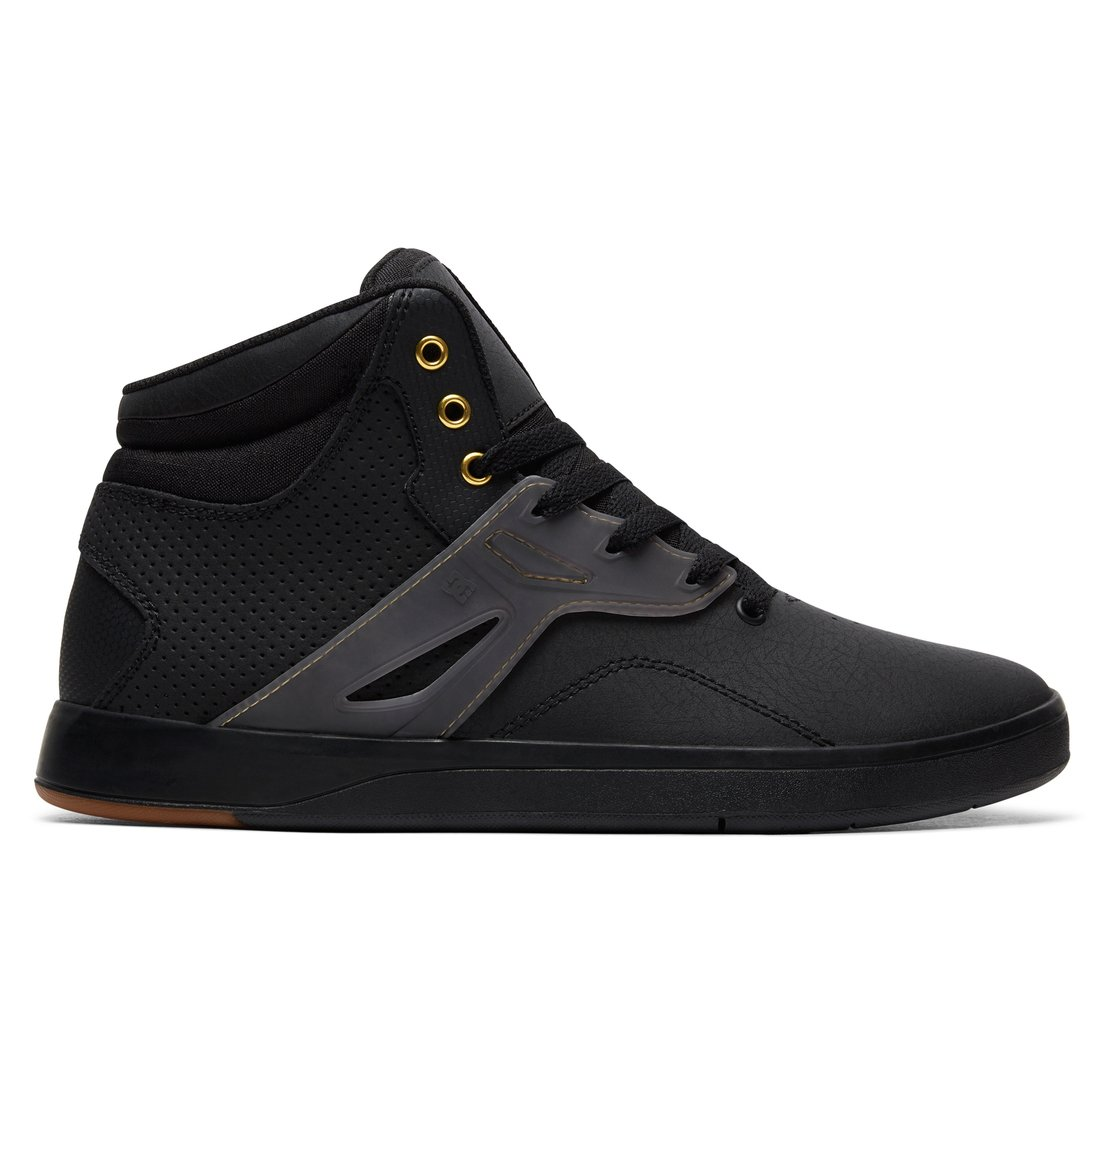 19c95245d6 Frequency - High-Top Shoes